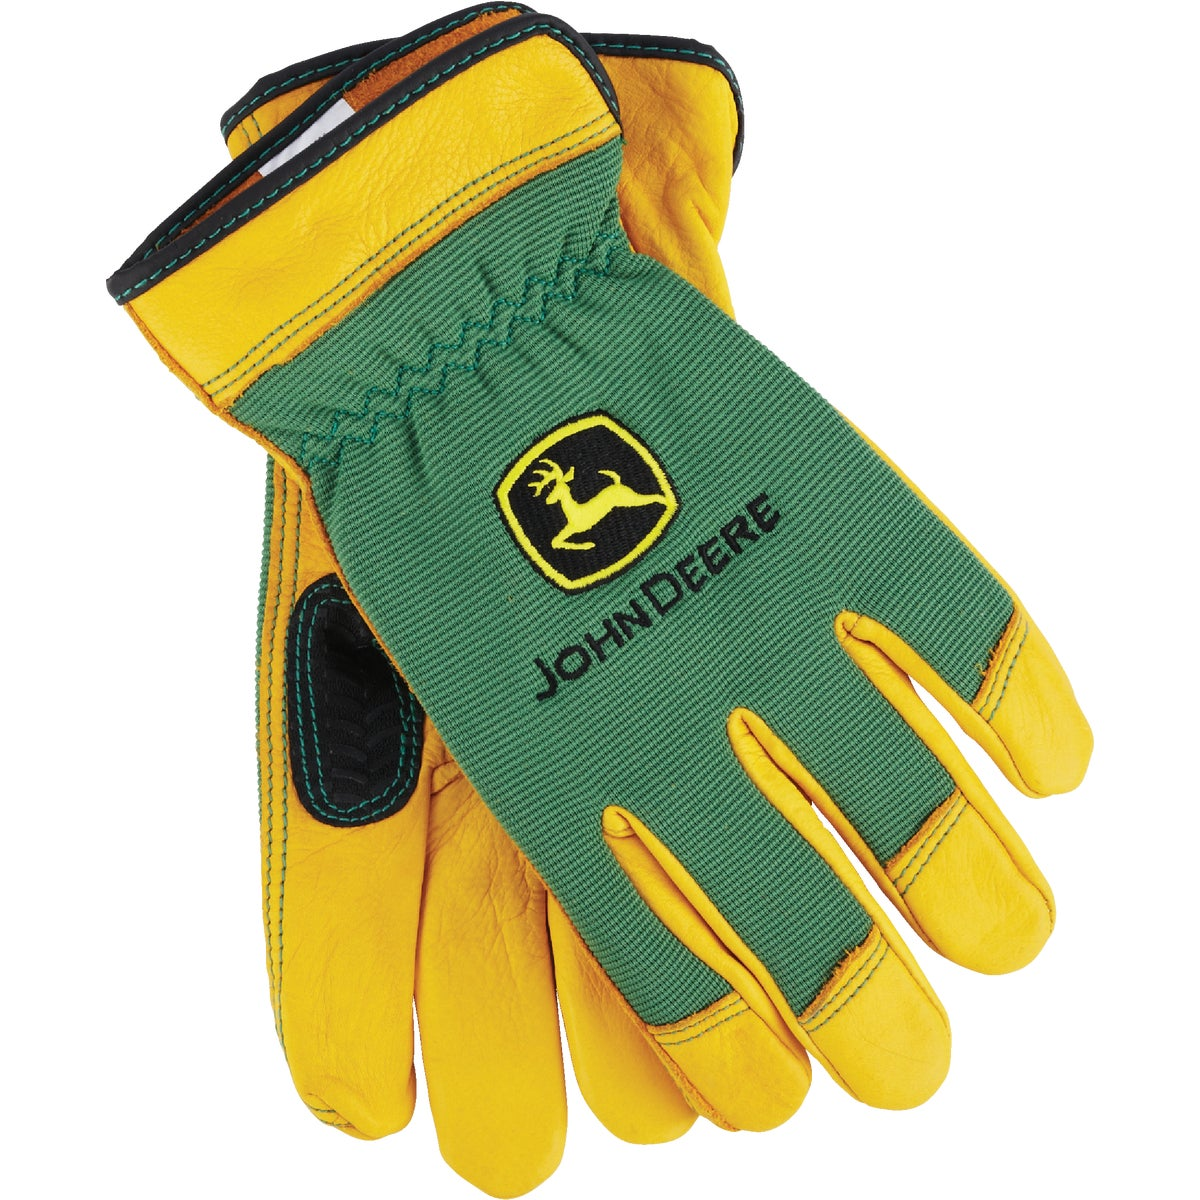 LRG DEERSKIN LTHR GLOVE - JD00008/L by West Chester Incom